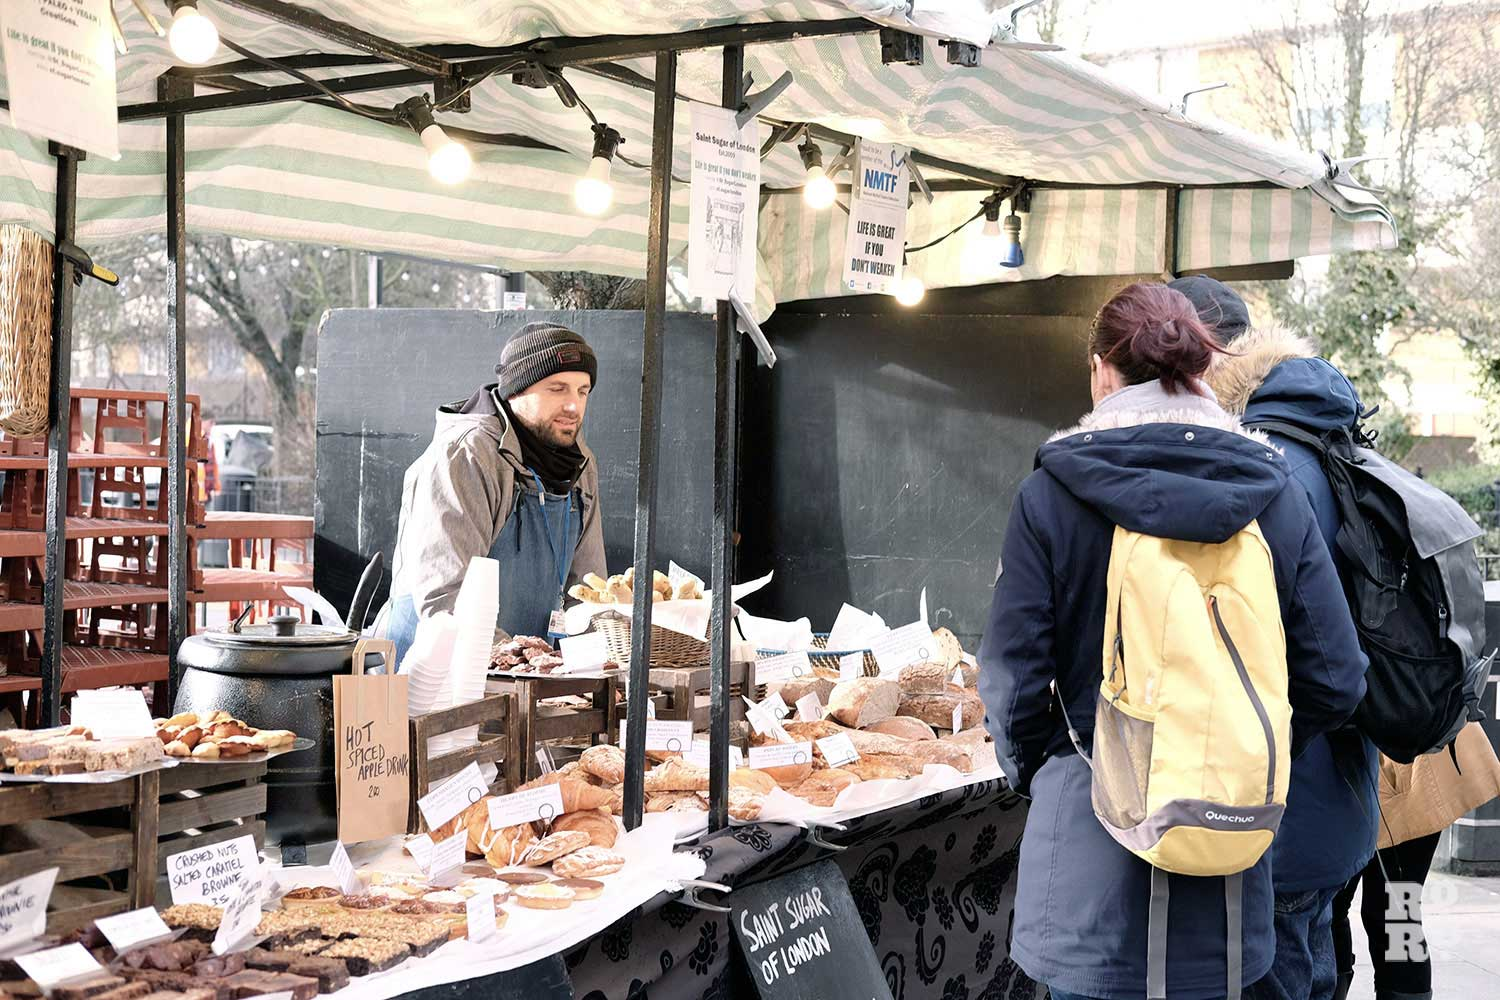 Roman Road market goers browse the Saint Sugar of London selection